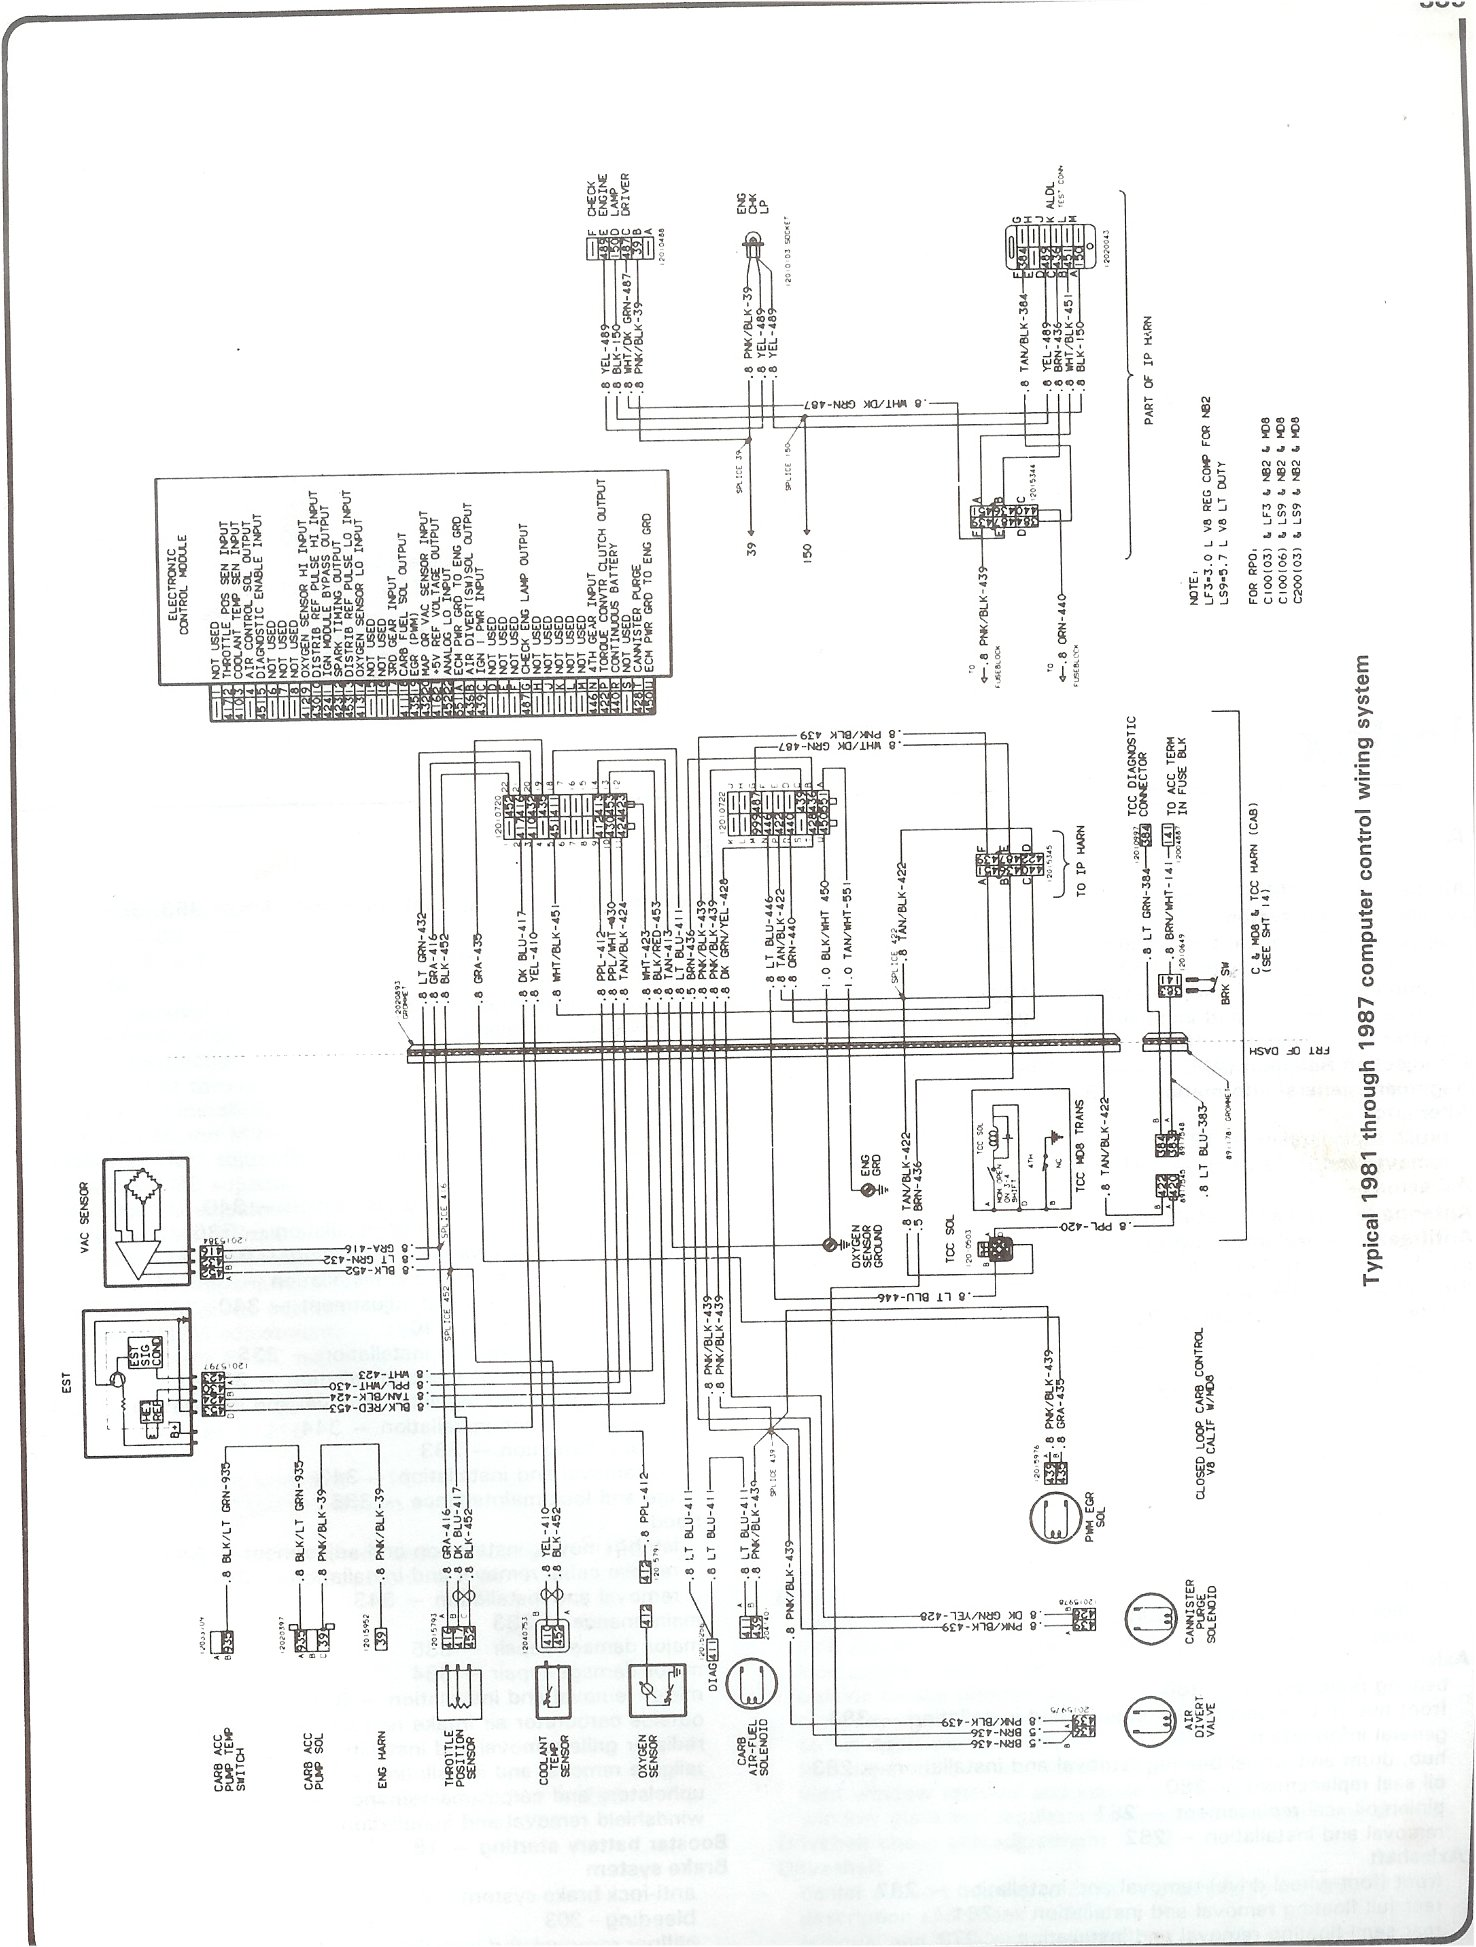 79 Chevy Truck Wiring Diagram Wiring Diagram Pictures LED Light Bar Wiring  Diagram 88 G30 Wiring Diagram